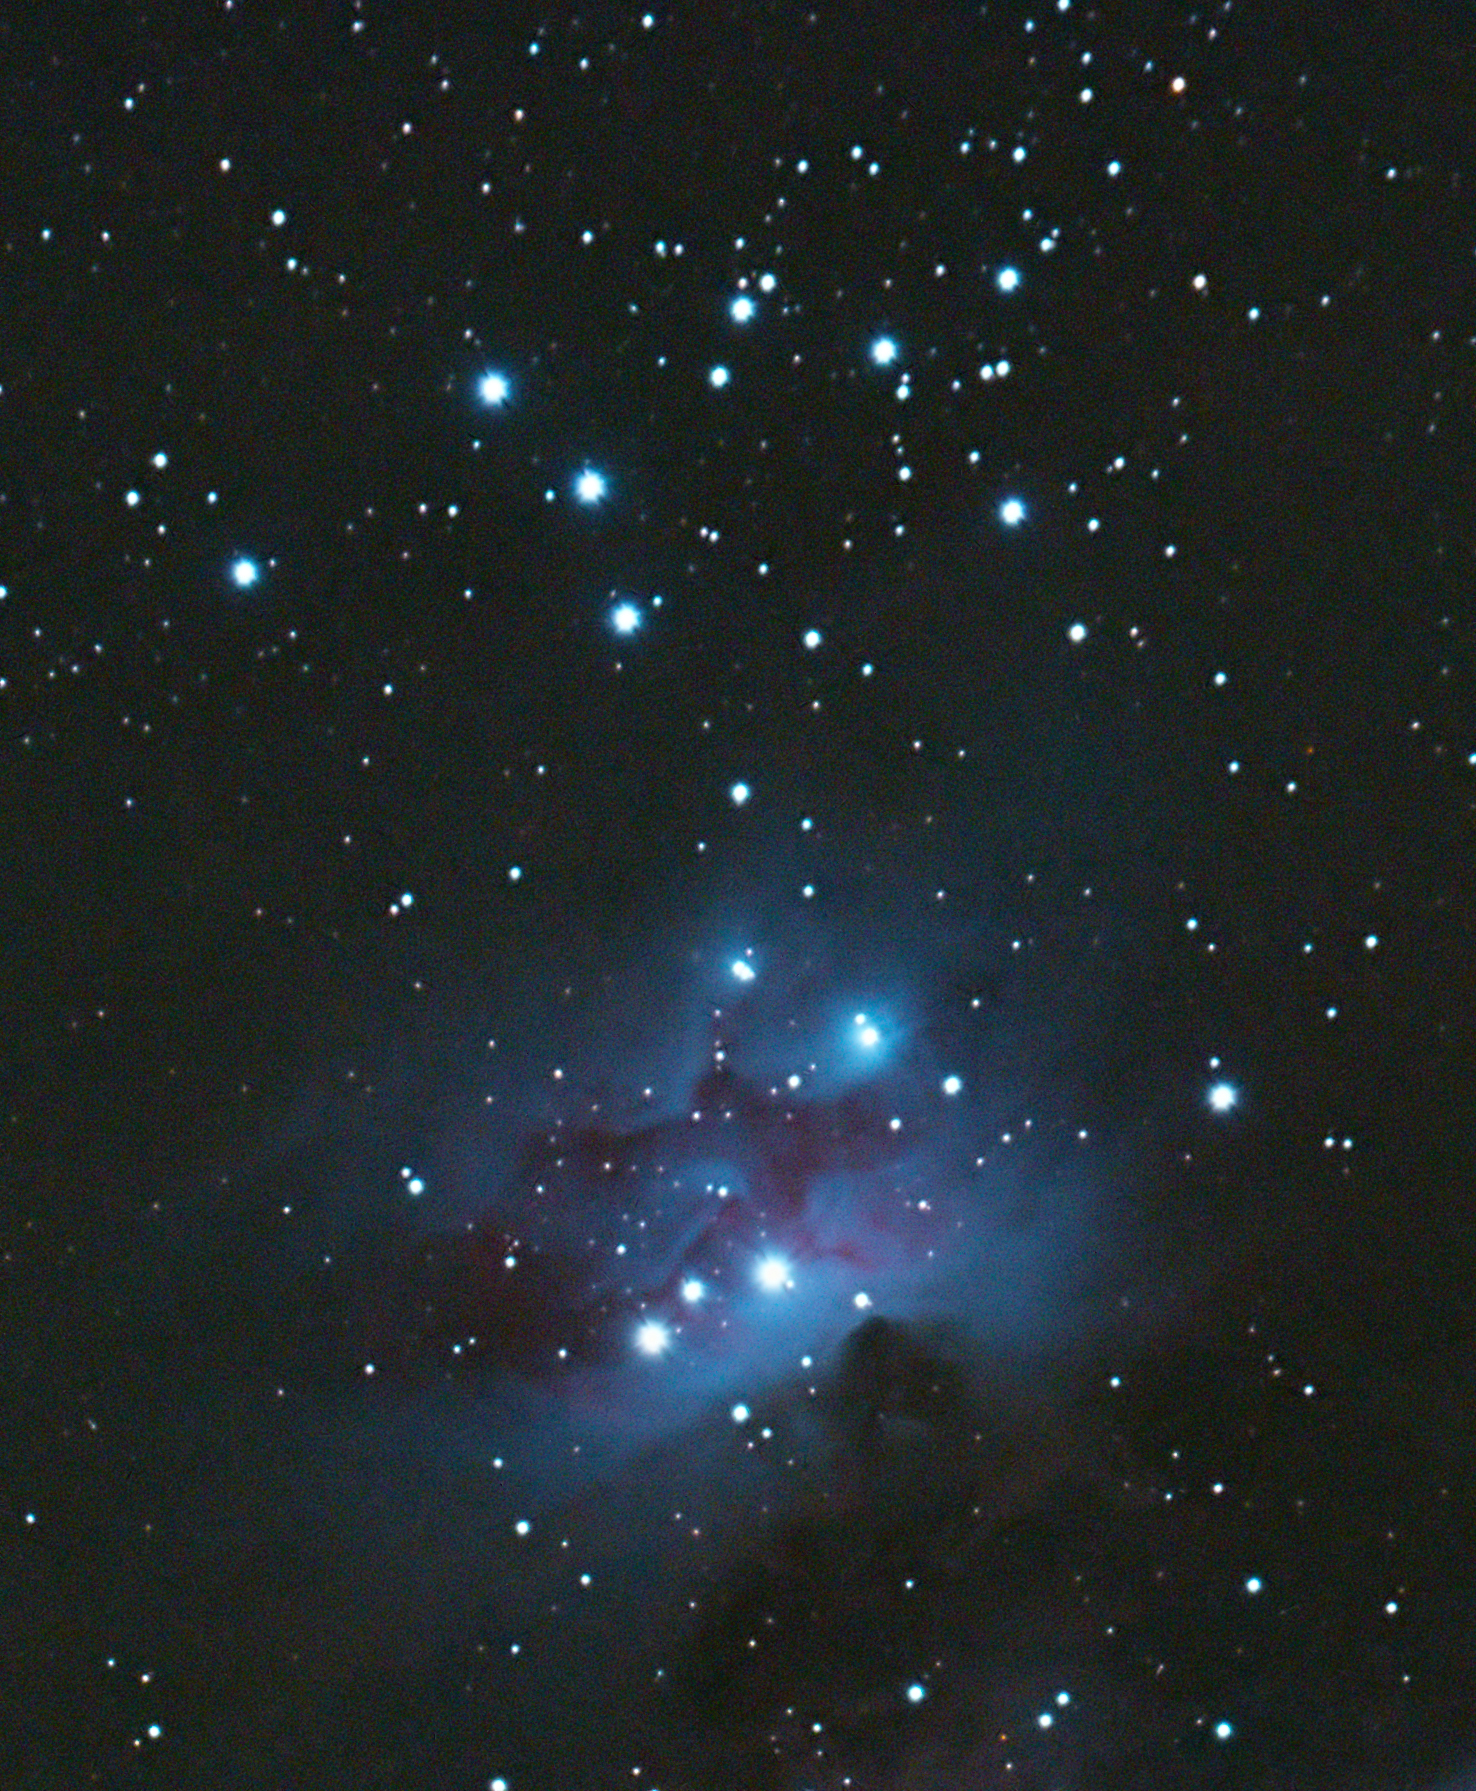 NGC1981. Image credit: Astrobase North West